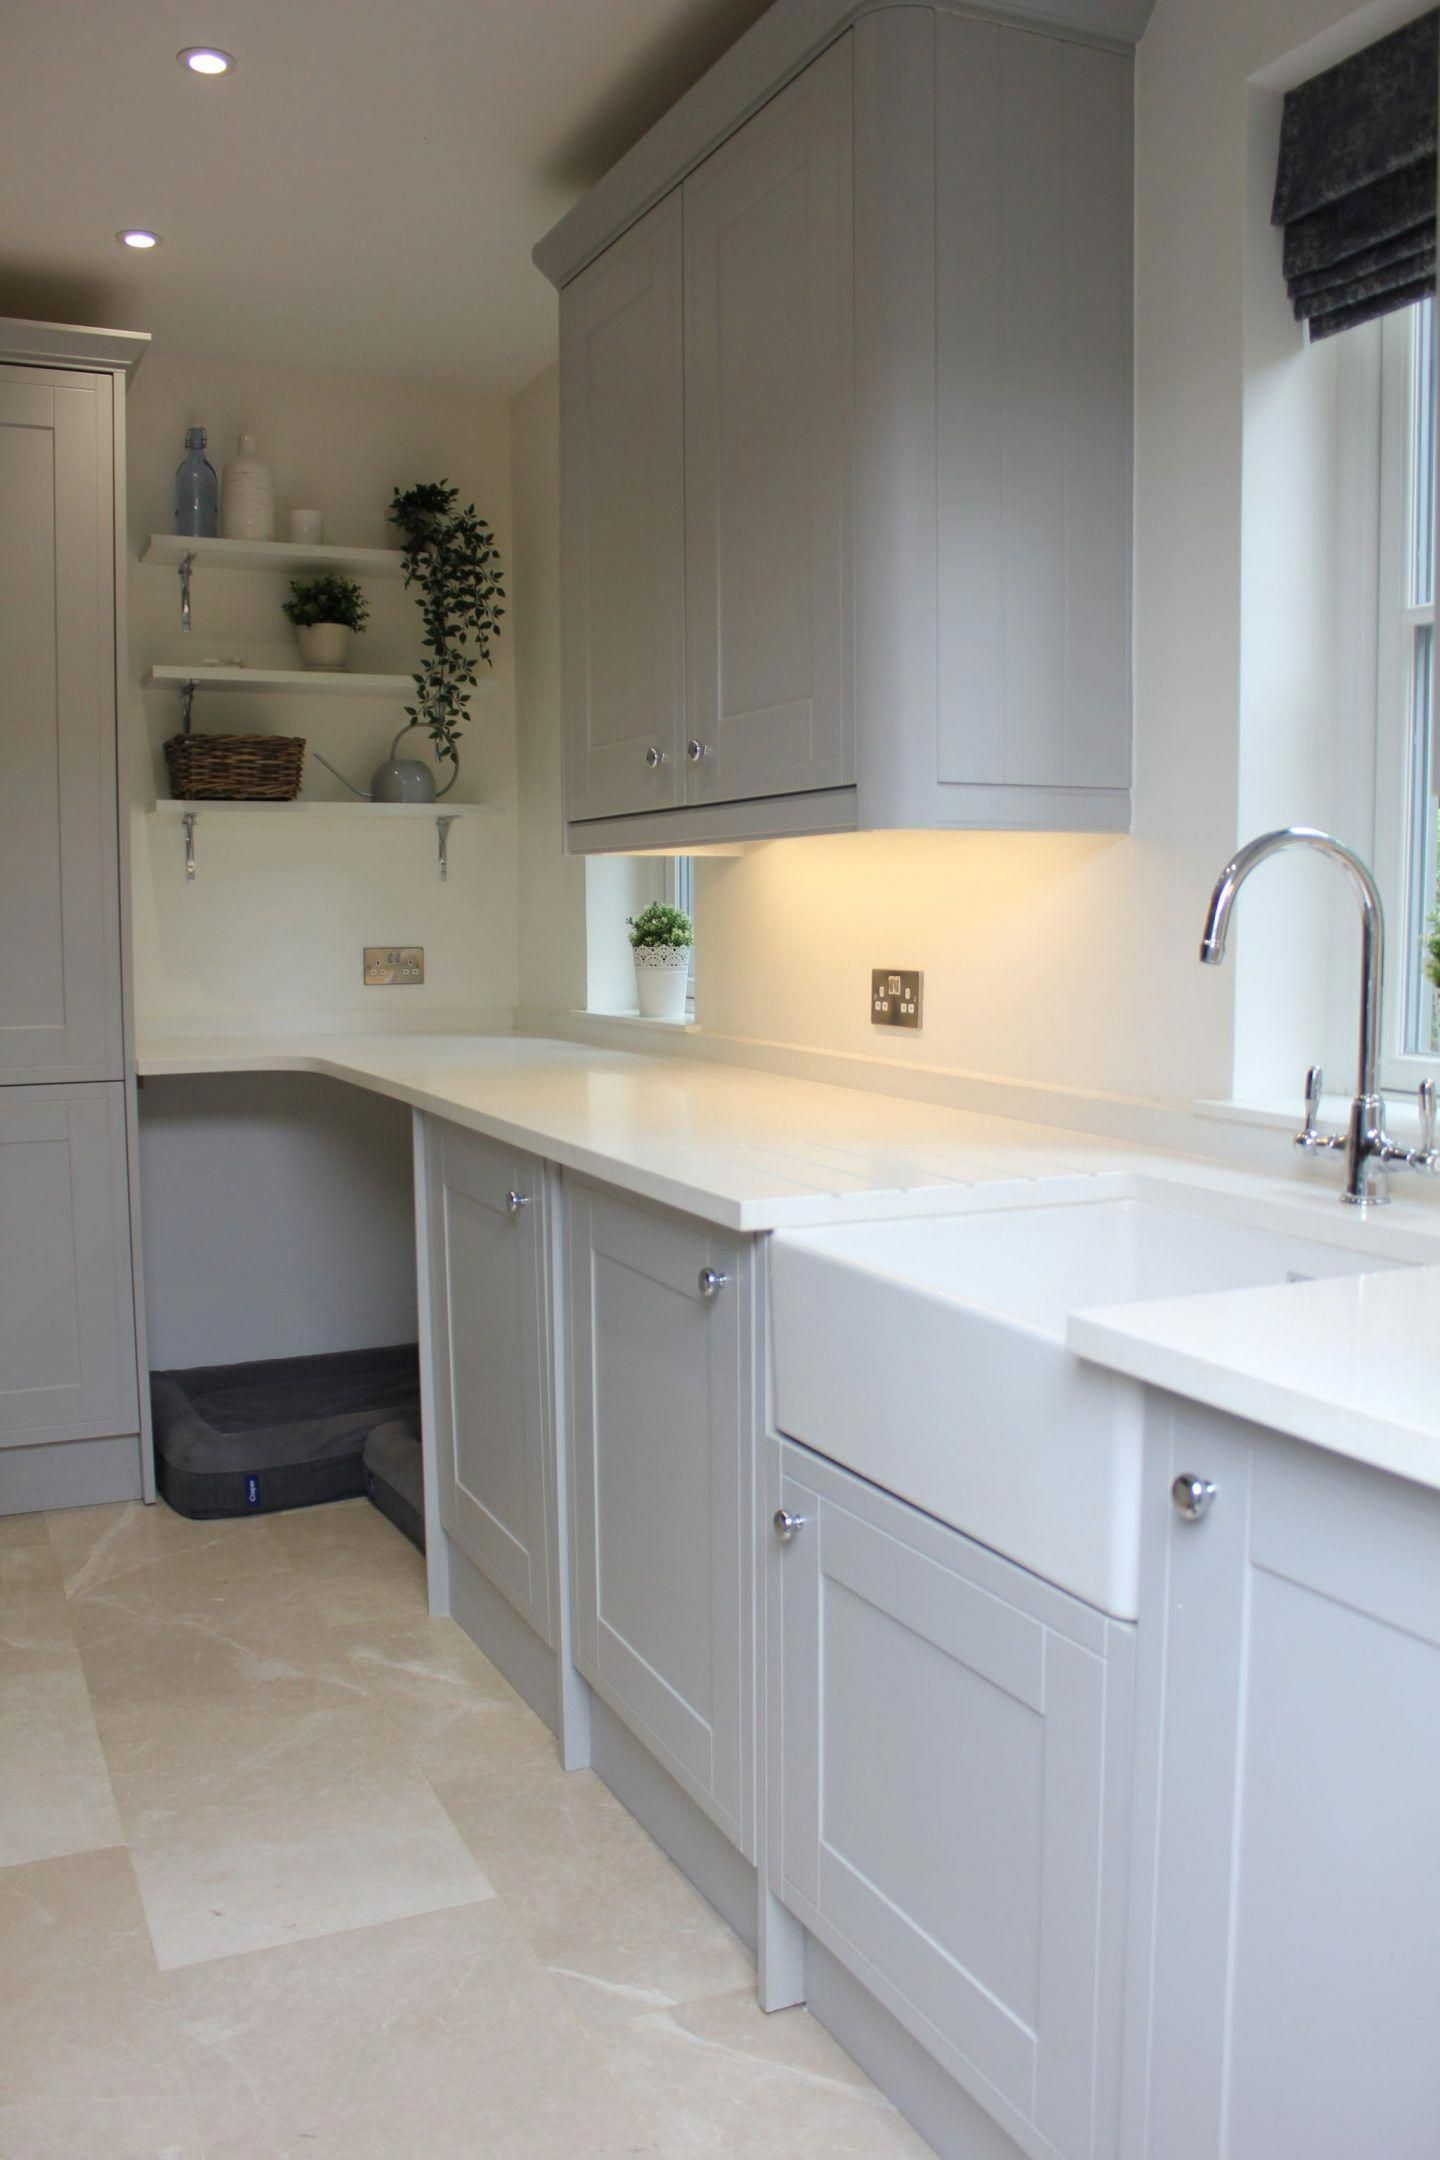 Should Bathroom And Kitchen Cabinets Match Should Furniture Match #FurnitureSoftware Key: 4756691313